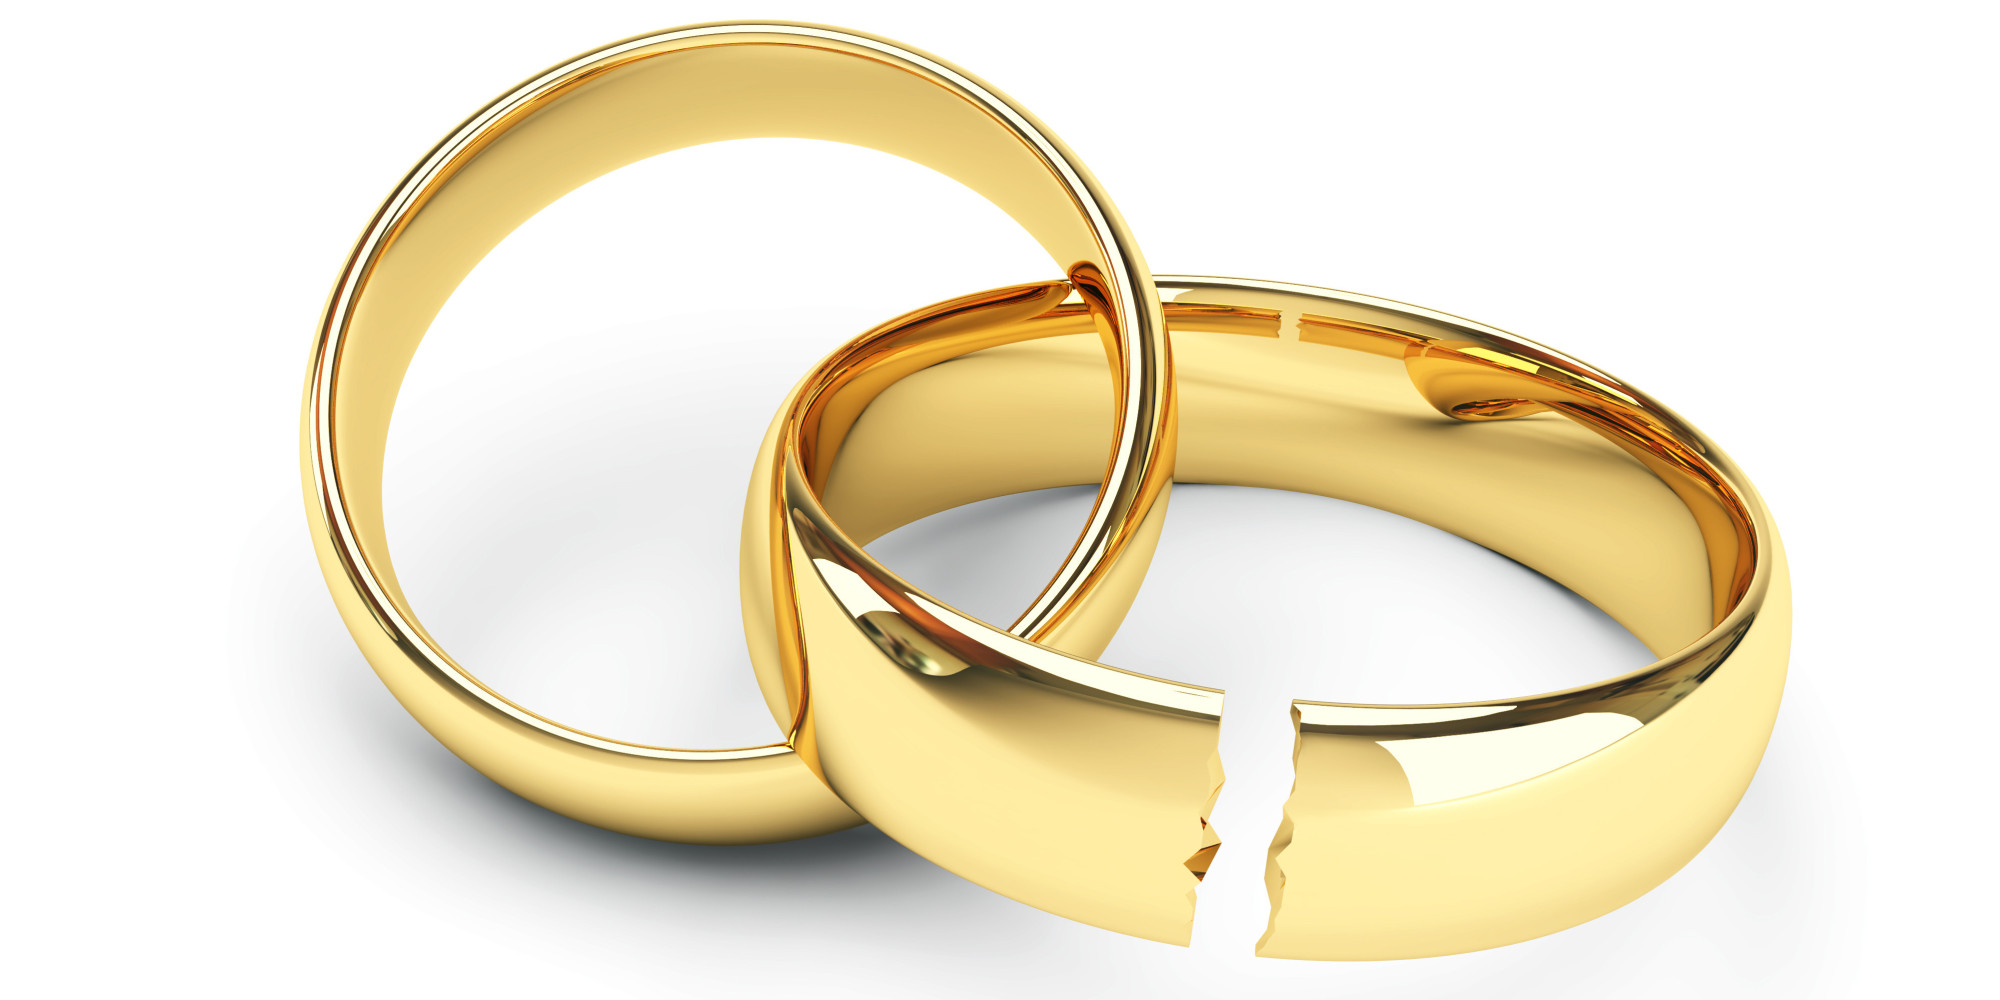 how samesex marriage make b gay wedding bands How Same Sex Marriage Makes the Engagement Ring Industry Explode HuffPost